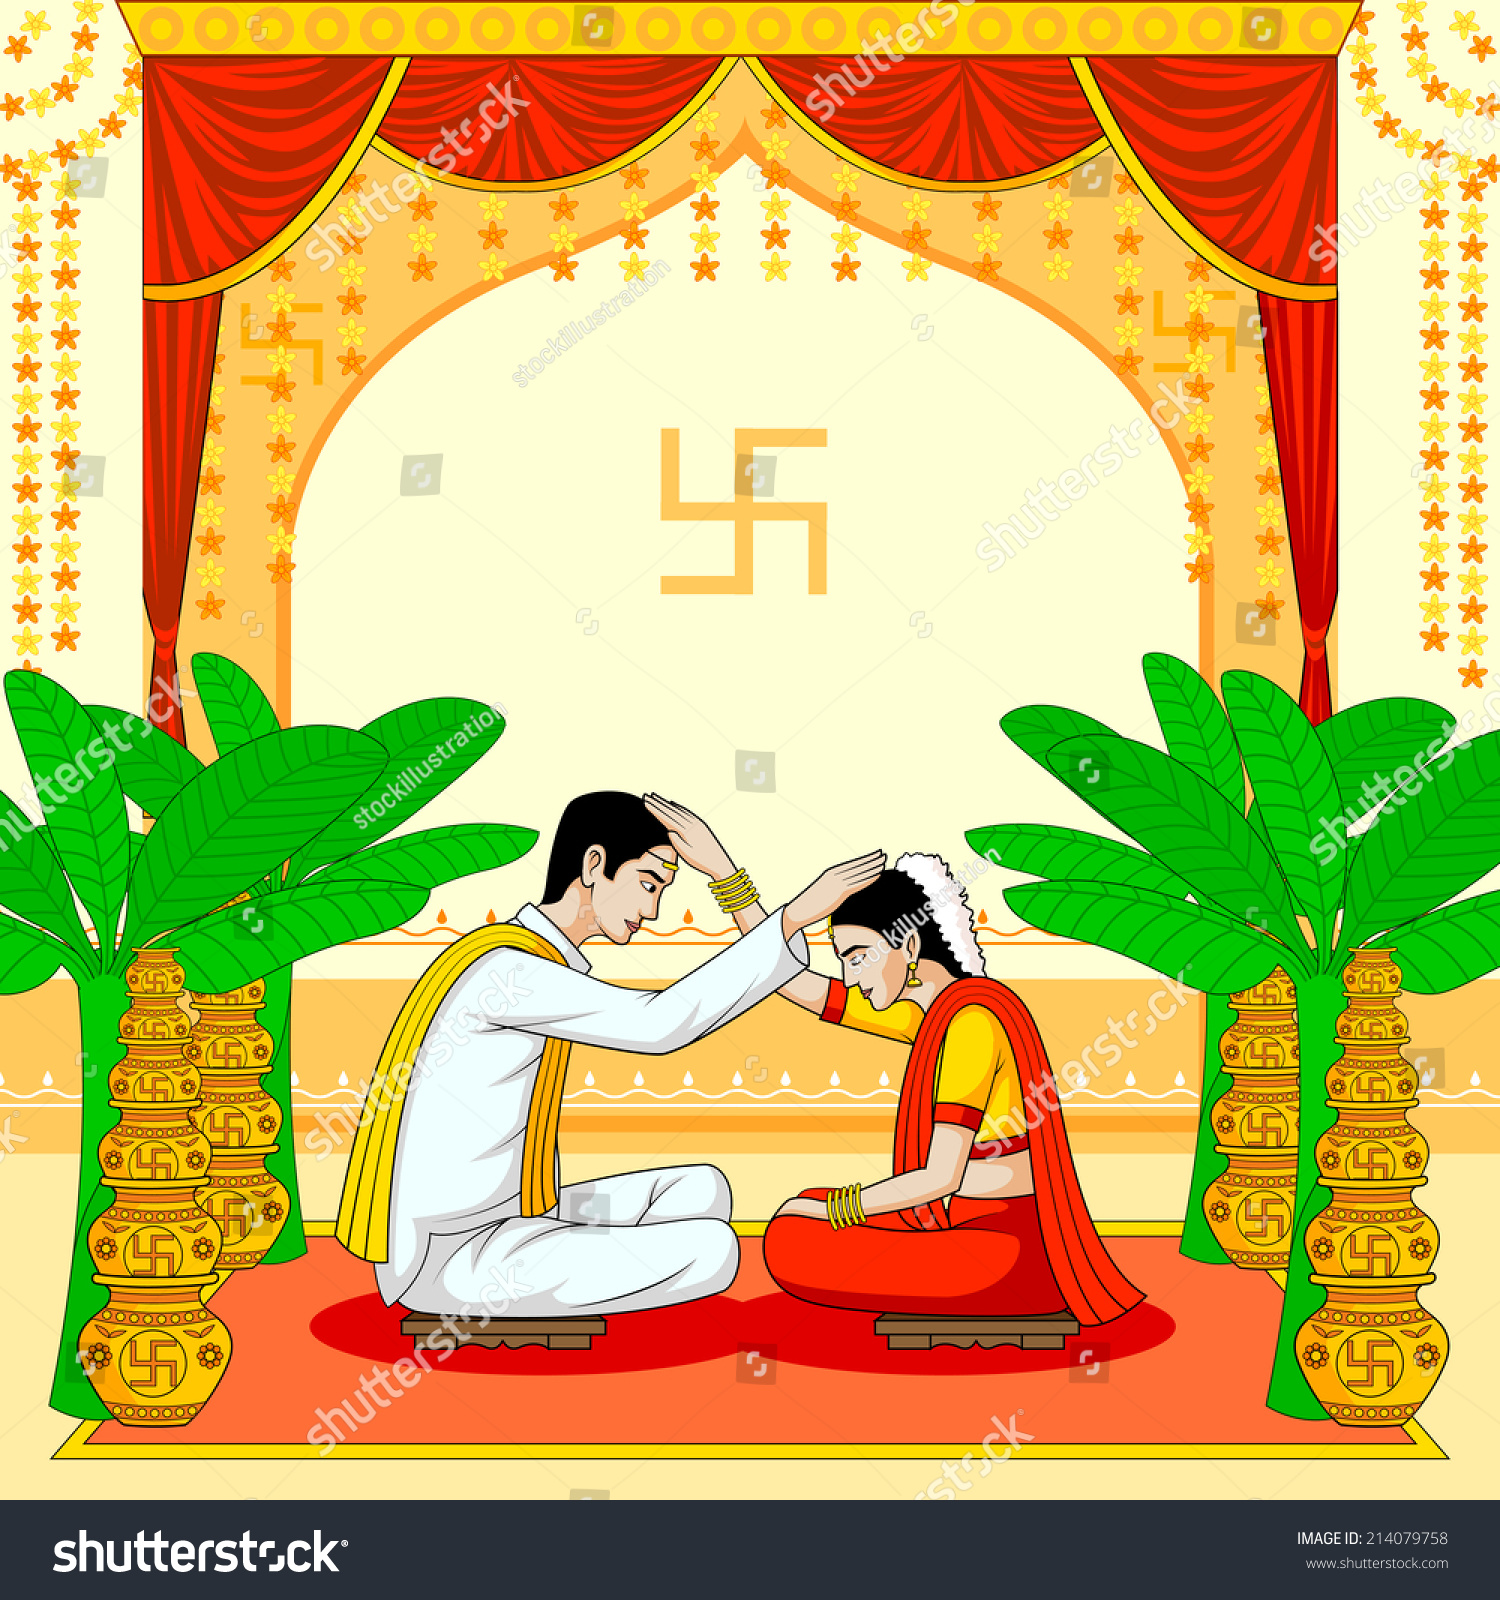 south hadley hindu dating site Join free hindu punjabi singles online site and events the leading service for hindu punjabi's with a great mobile app too communicate for free too.